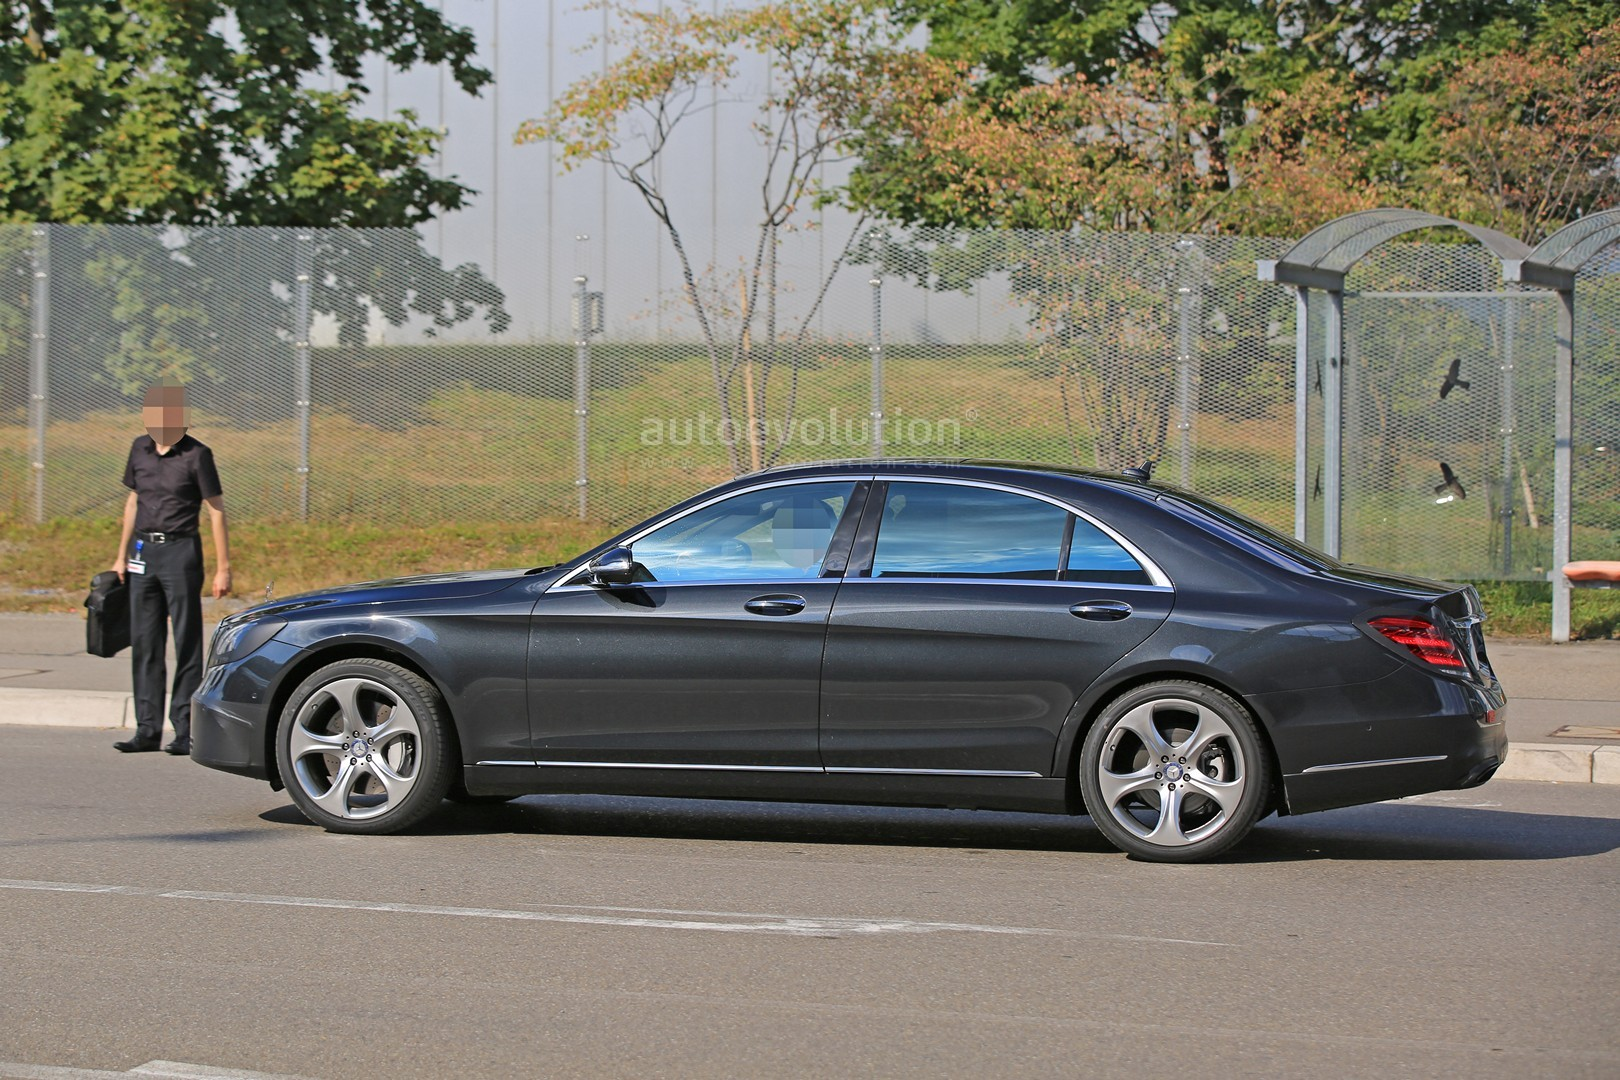 2018 mercedes s class taillights spied in detail autoevolution. Black Bedroom Furniture Sets. Home Design Ideas